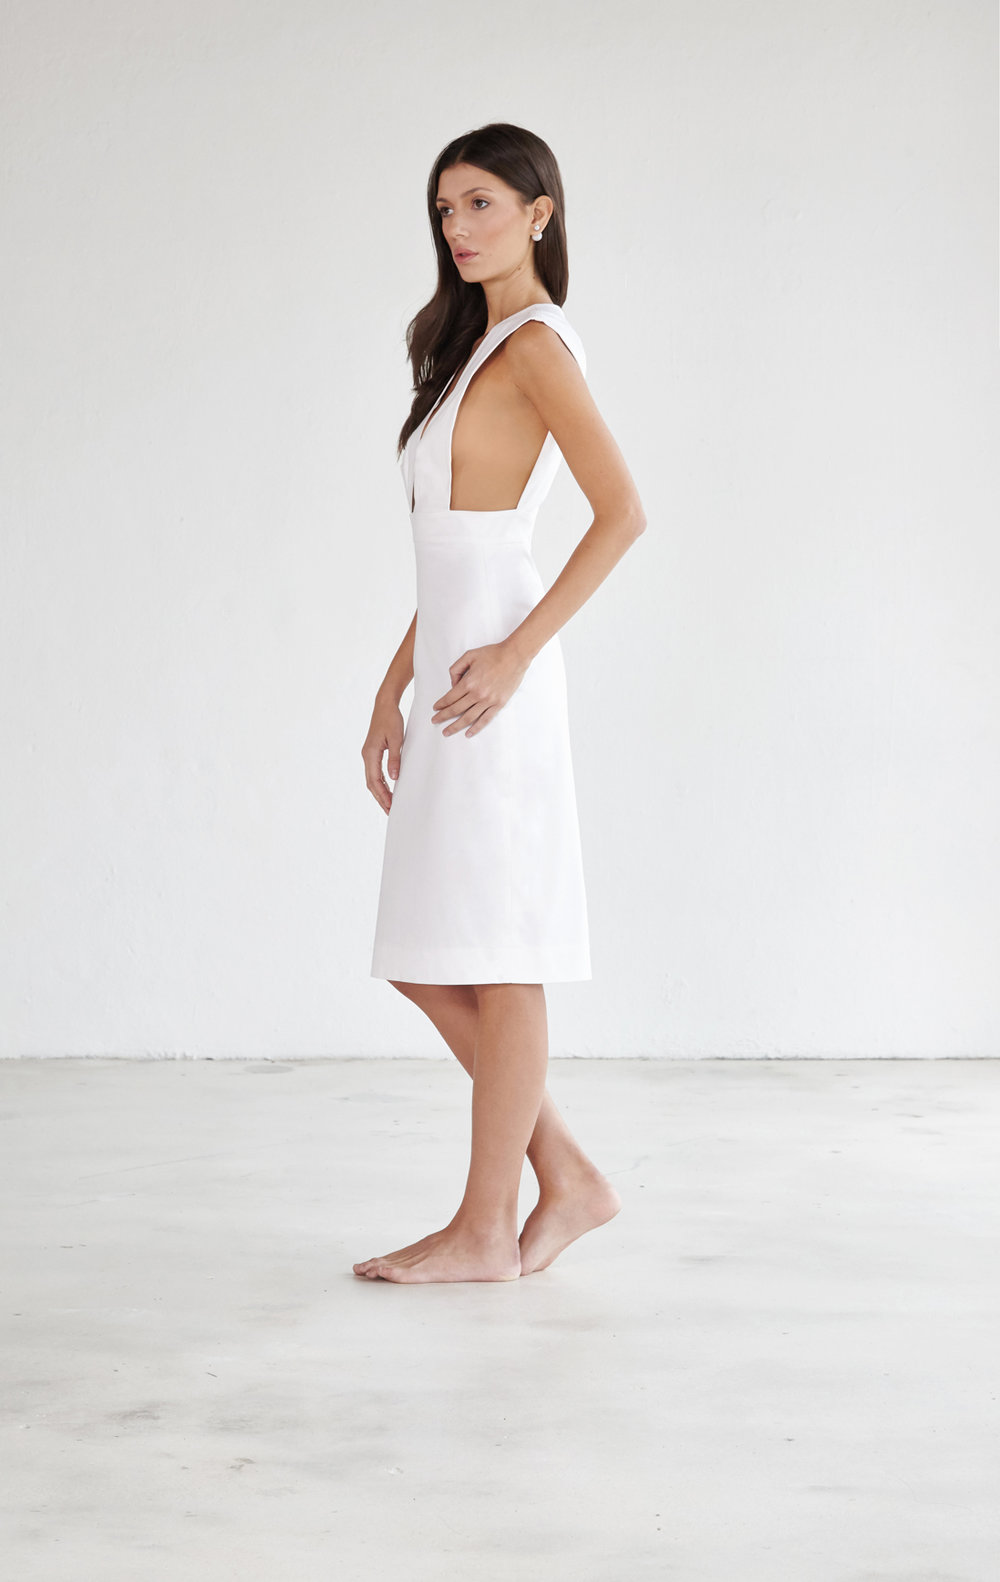 ERIKA_SS16_COLLECTION04176sm.jpg